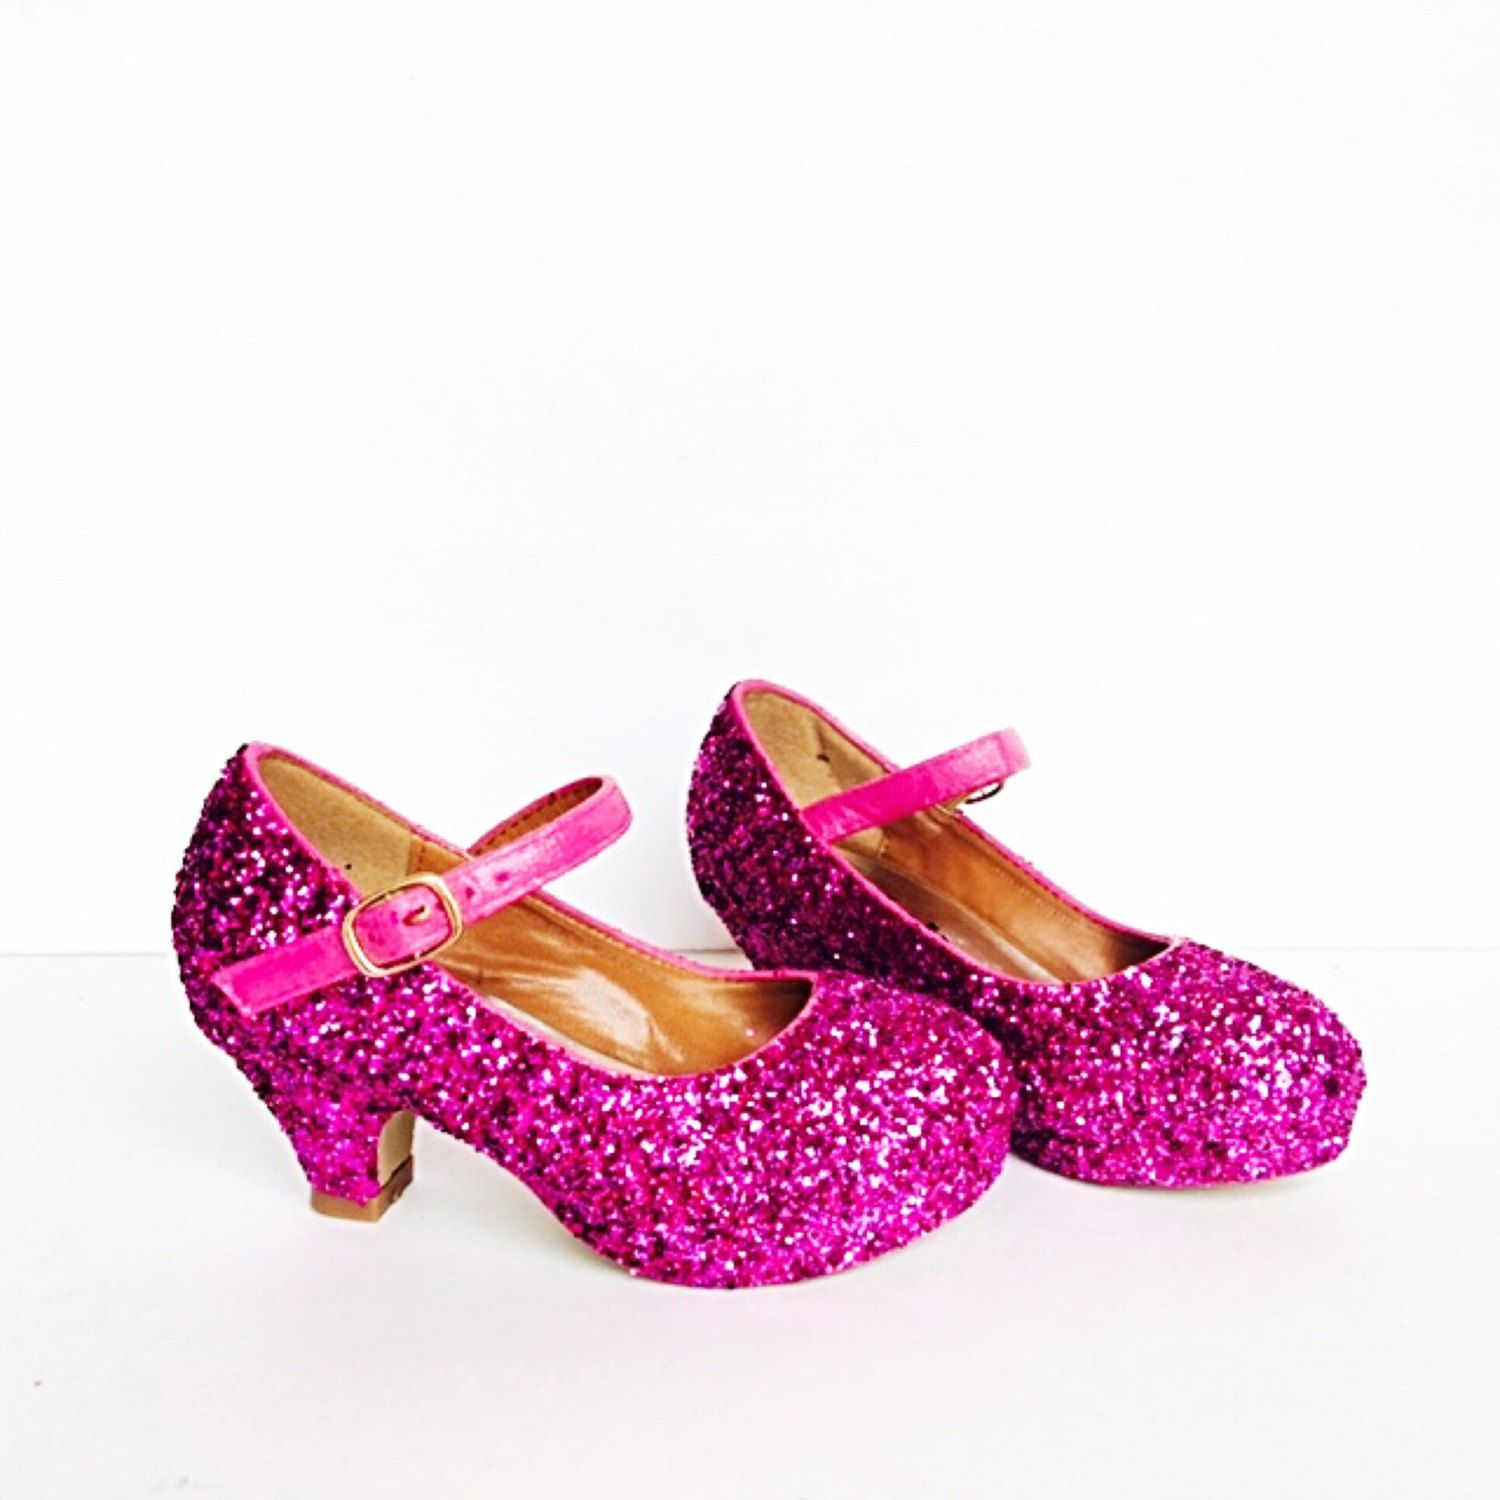 timeless design 6ed91 ddb87 Toddler Glitter Shoes - Pink Toddler Girls Heel - Magenta Hot Fushia Pink  Heel - Glitzy